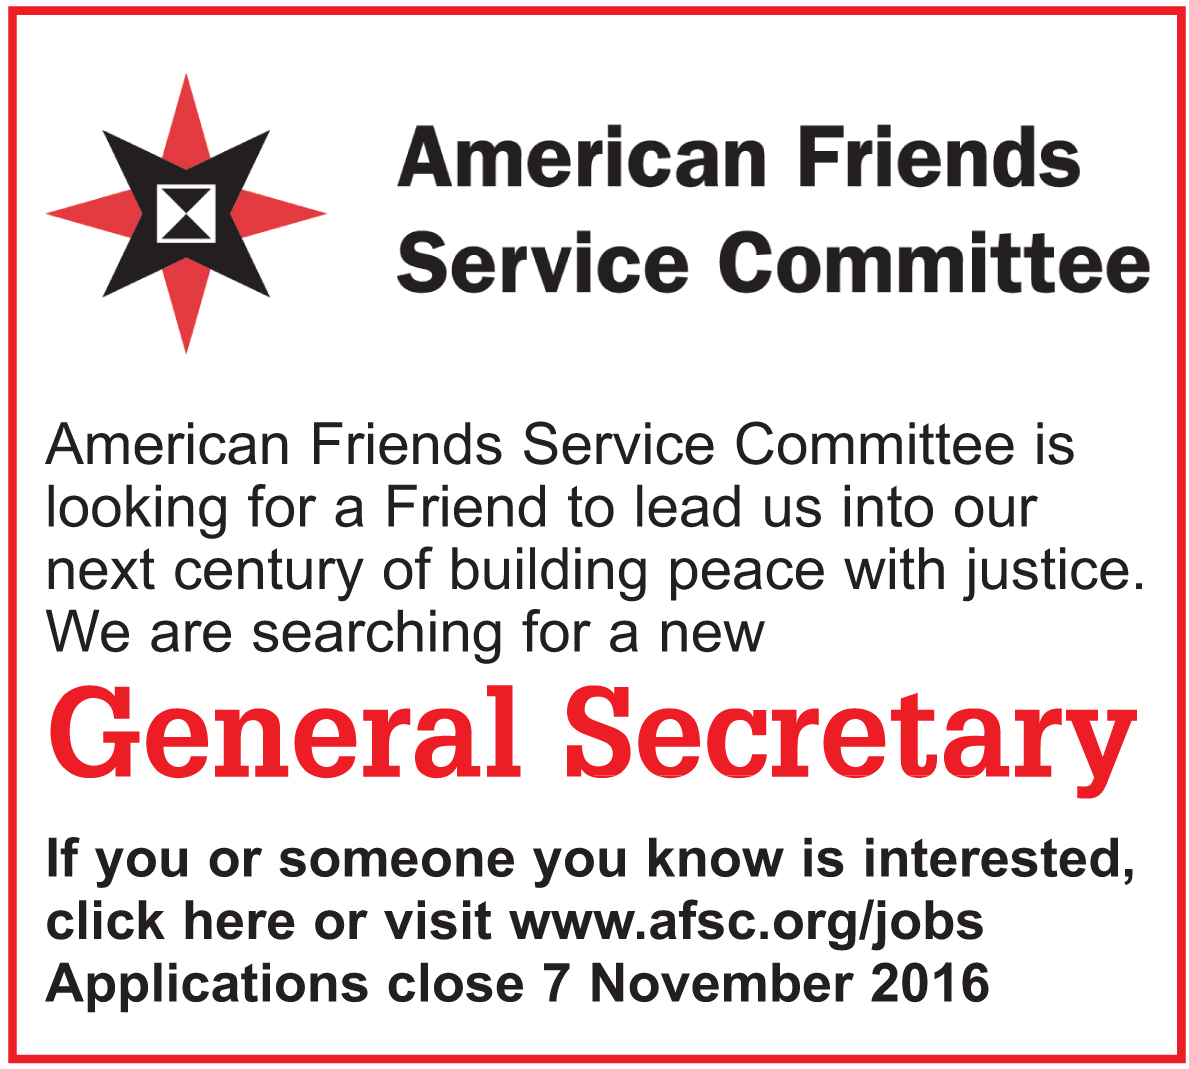 American Friends Service Committee